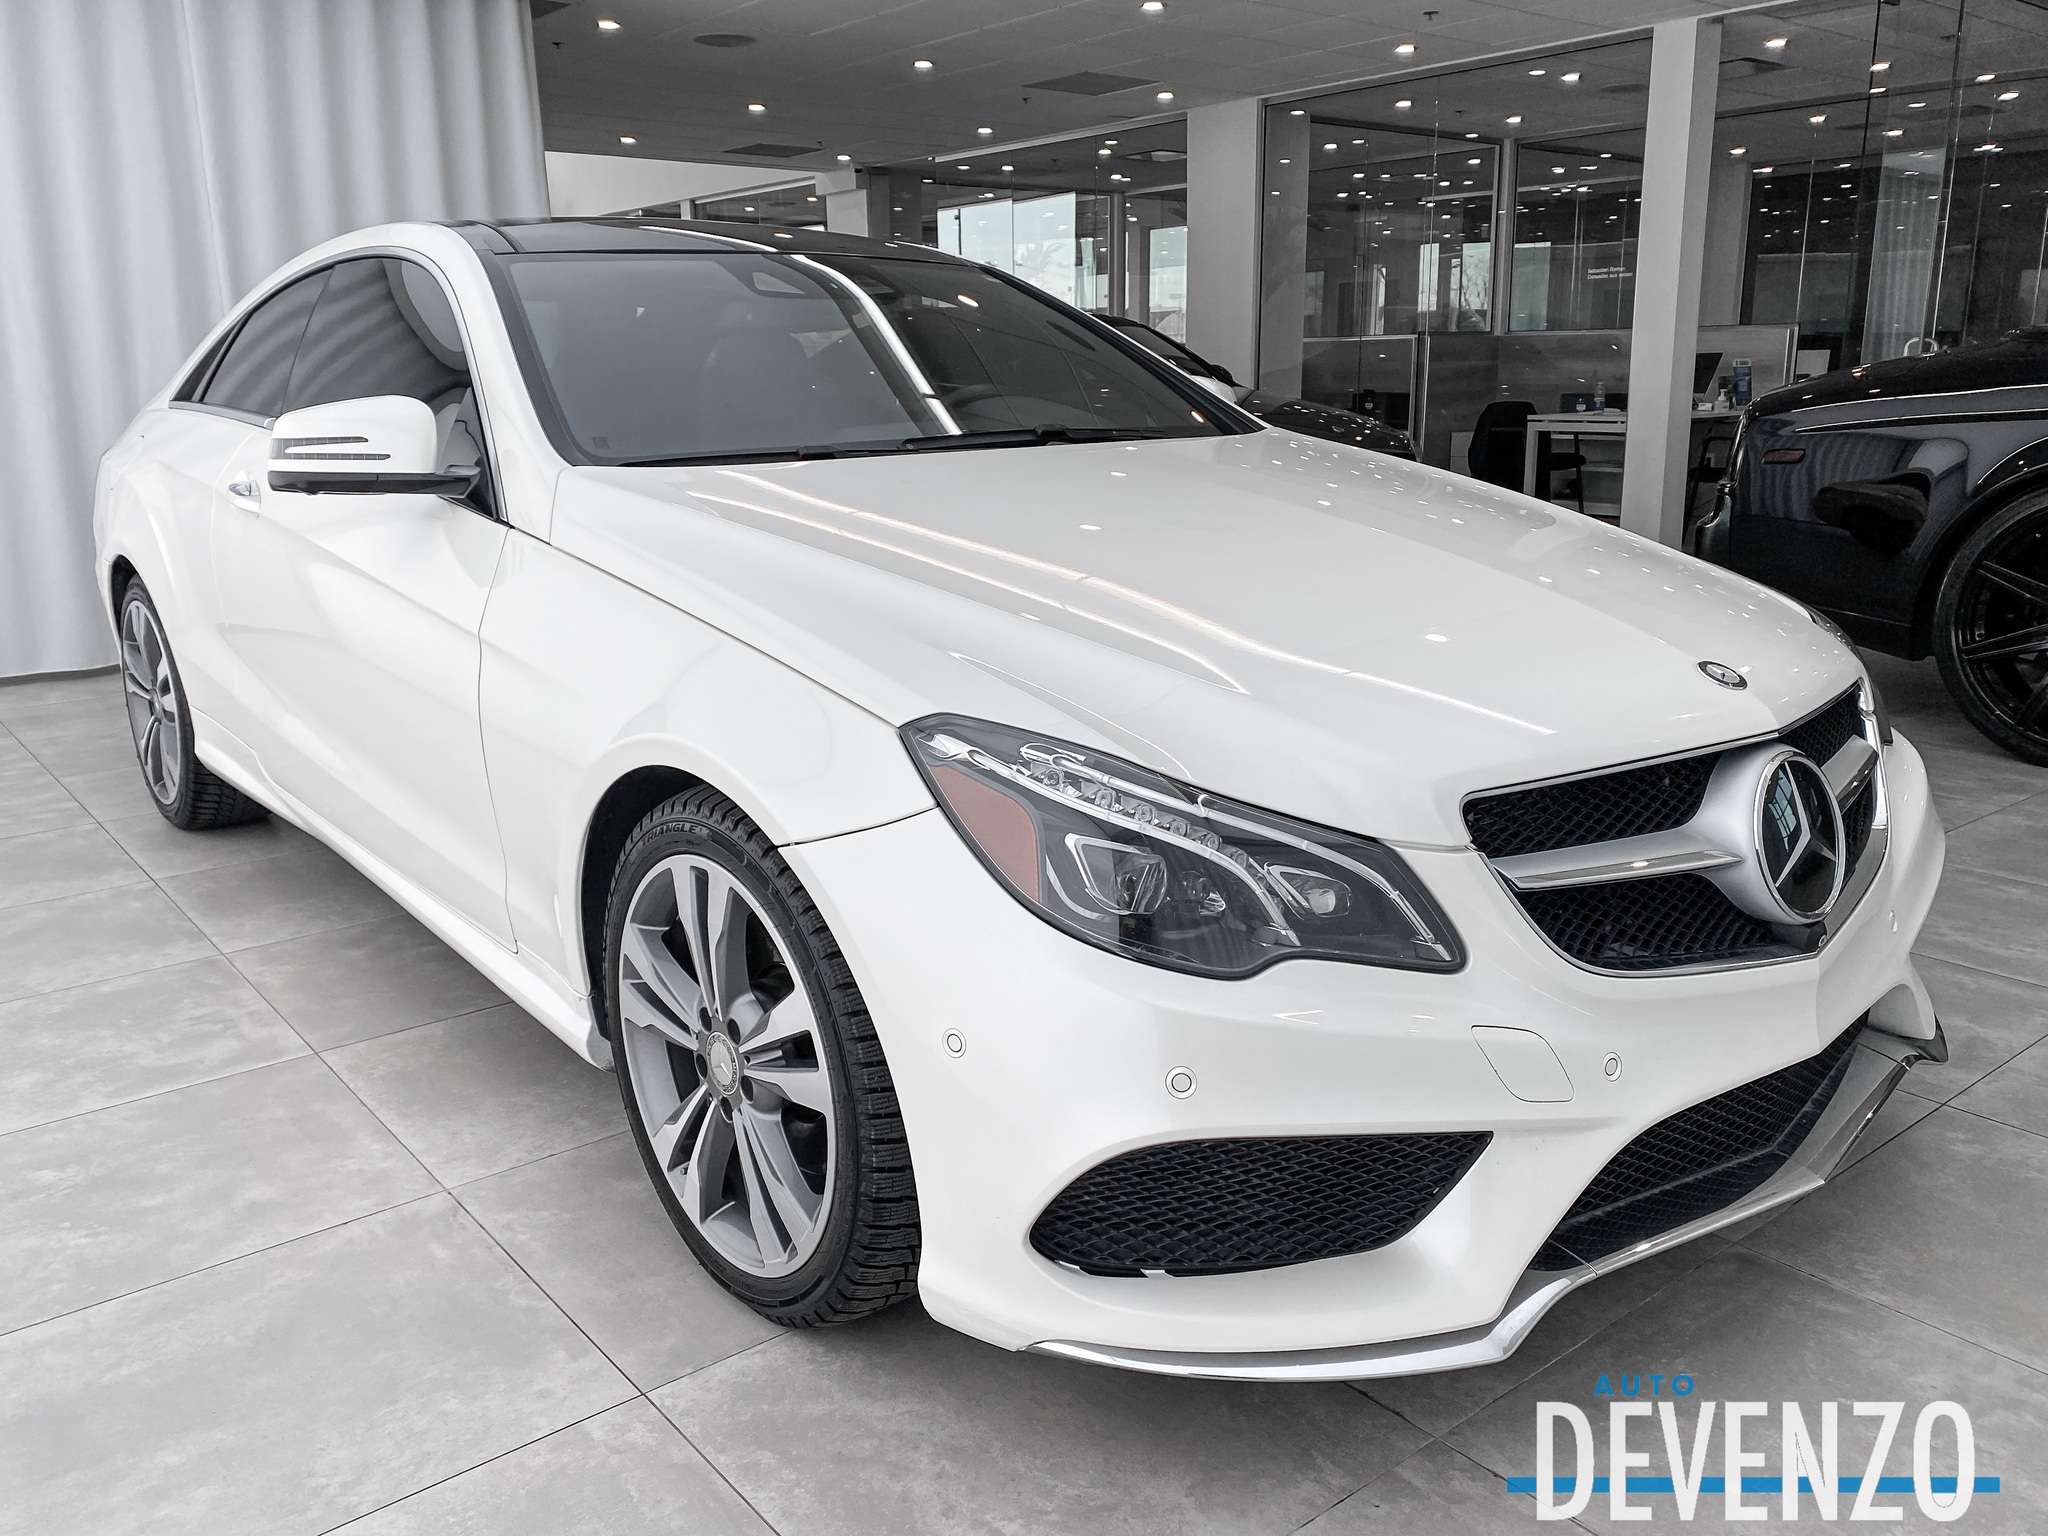 2015 Mercedes-Benz E-Class E400 COUPE 4MATIC DISTRONIC / NAVI / CAMERA 360 complet